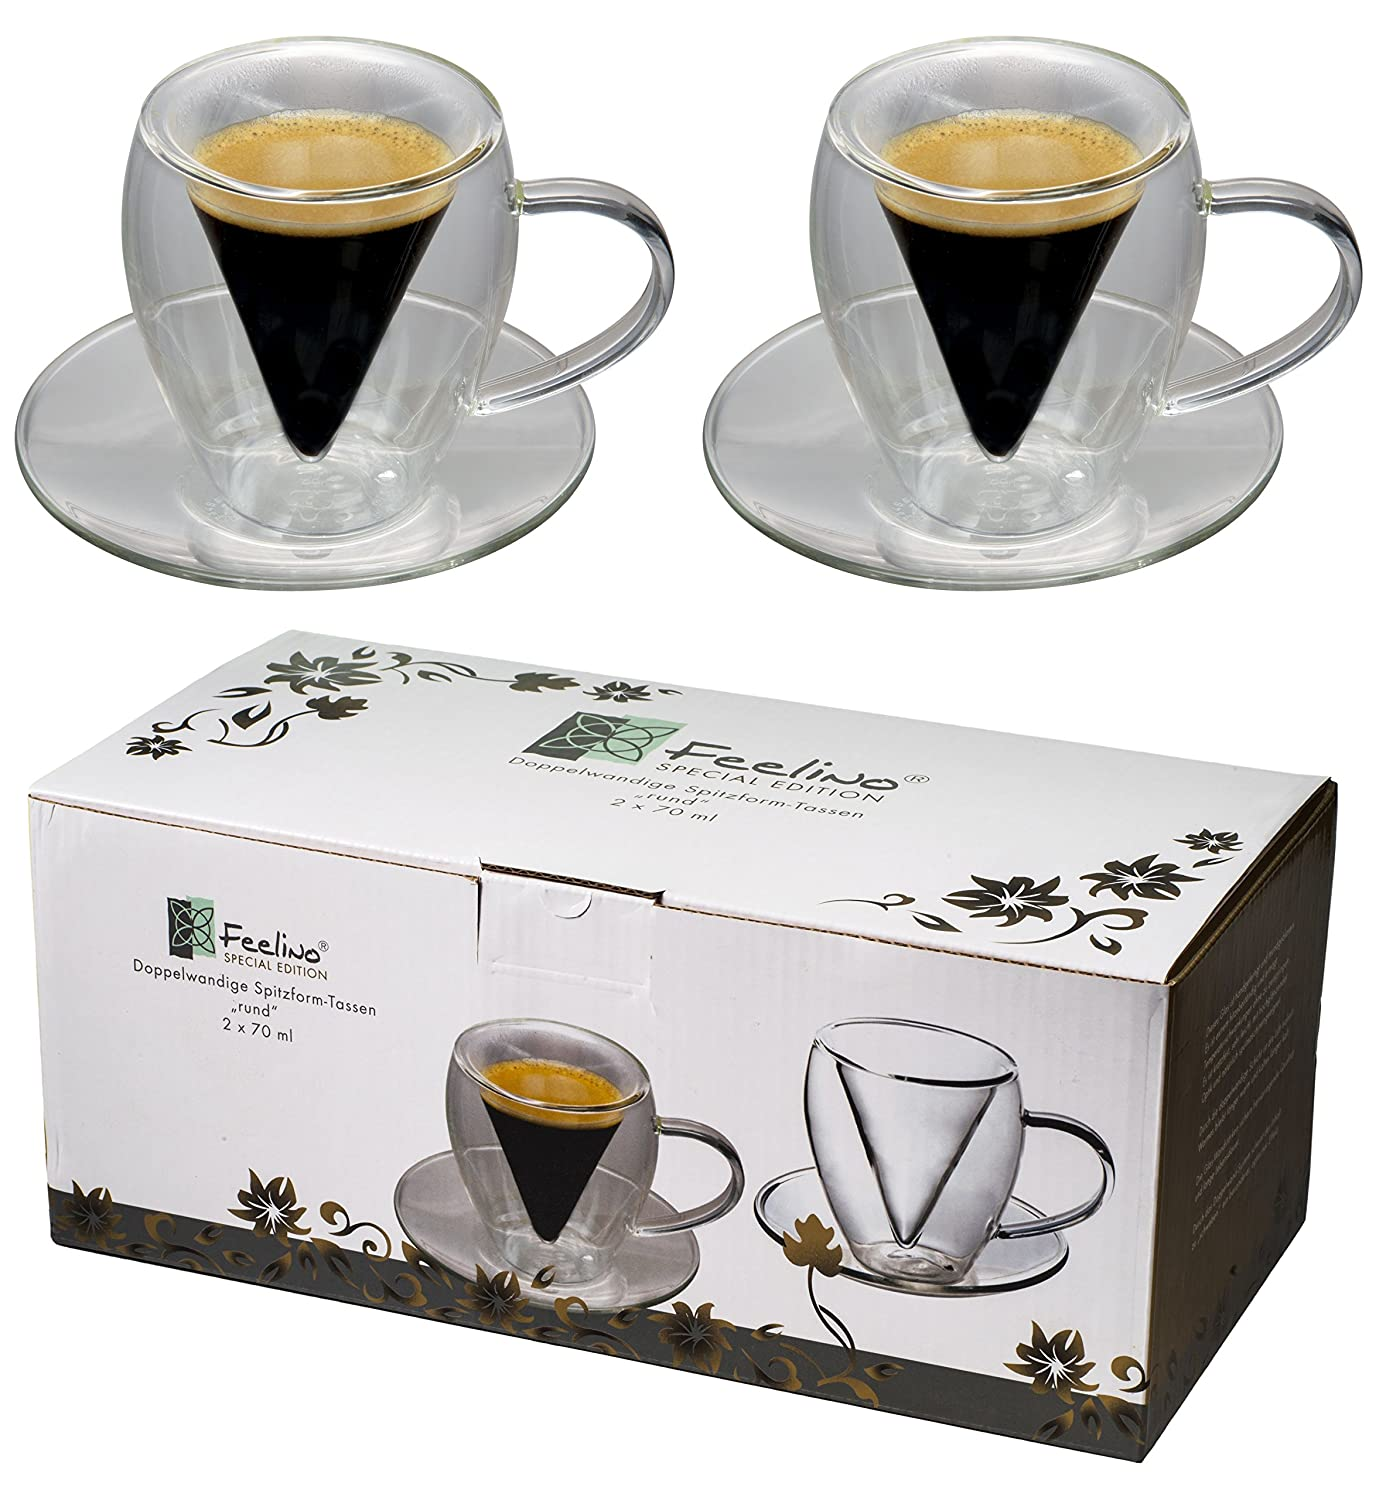 2x 70ml double-walled round glass cups